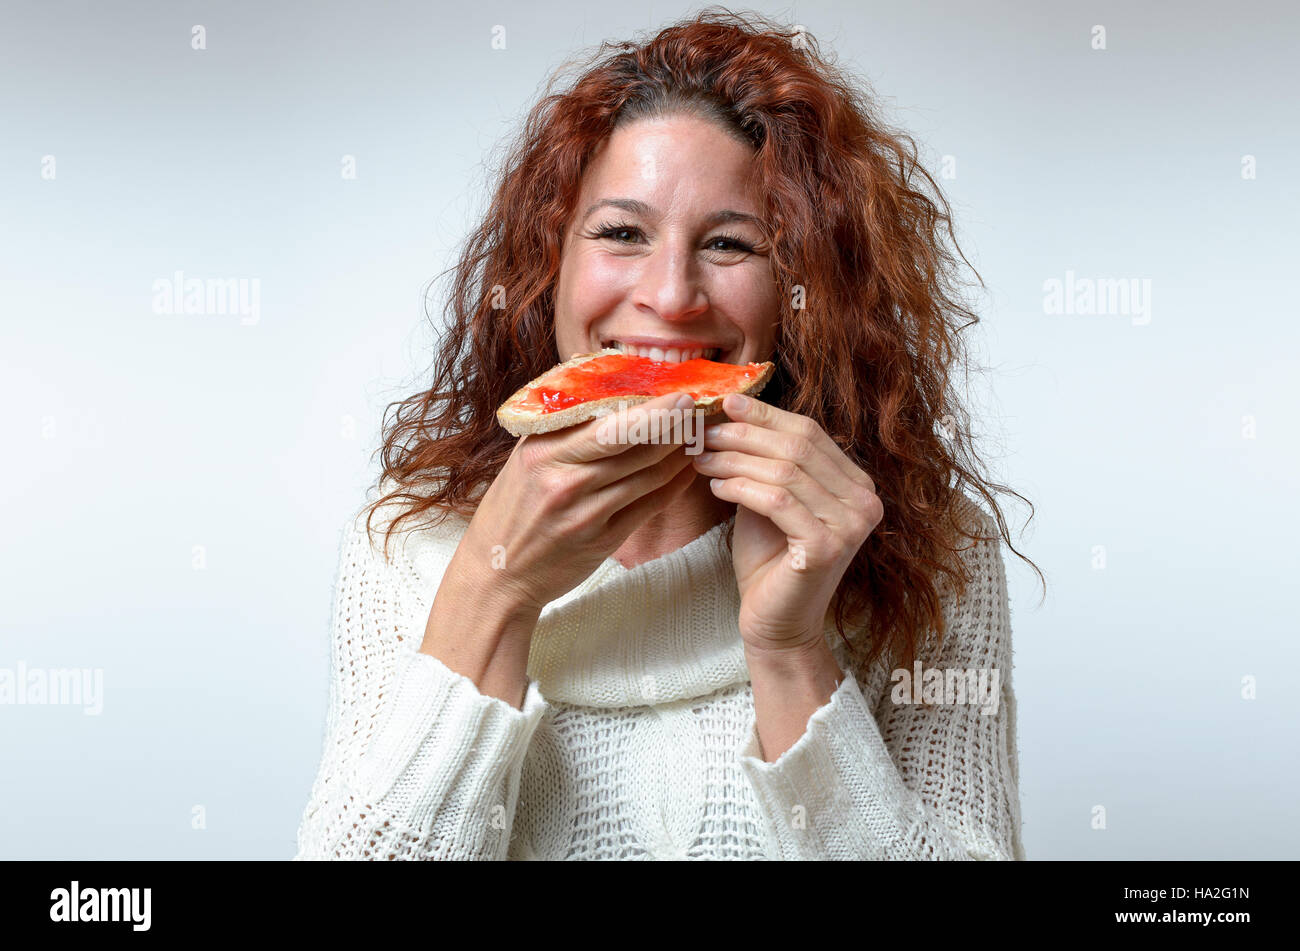 Smiling happy woman biting into colorful red berry jam on a slice of bread as she grins at the camera, close up - Stock Image